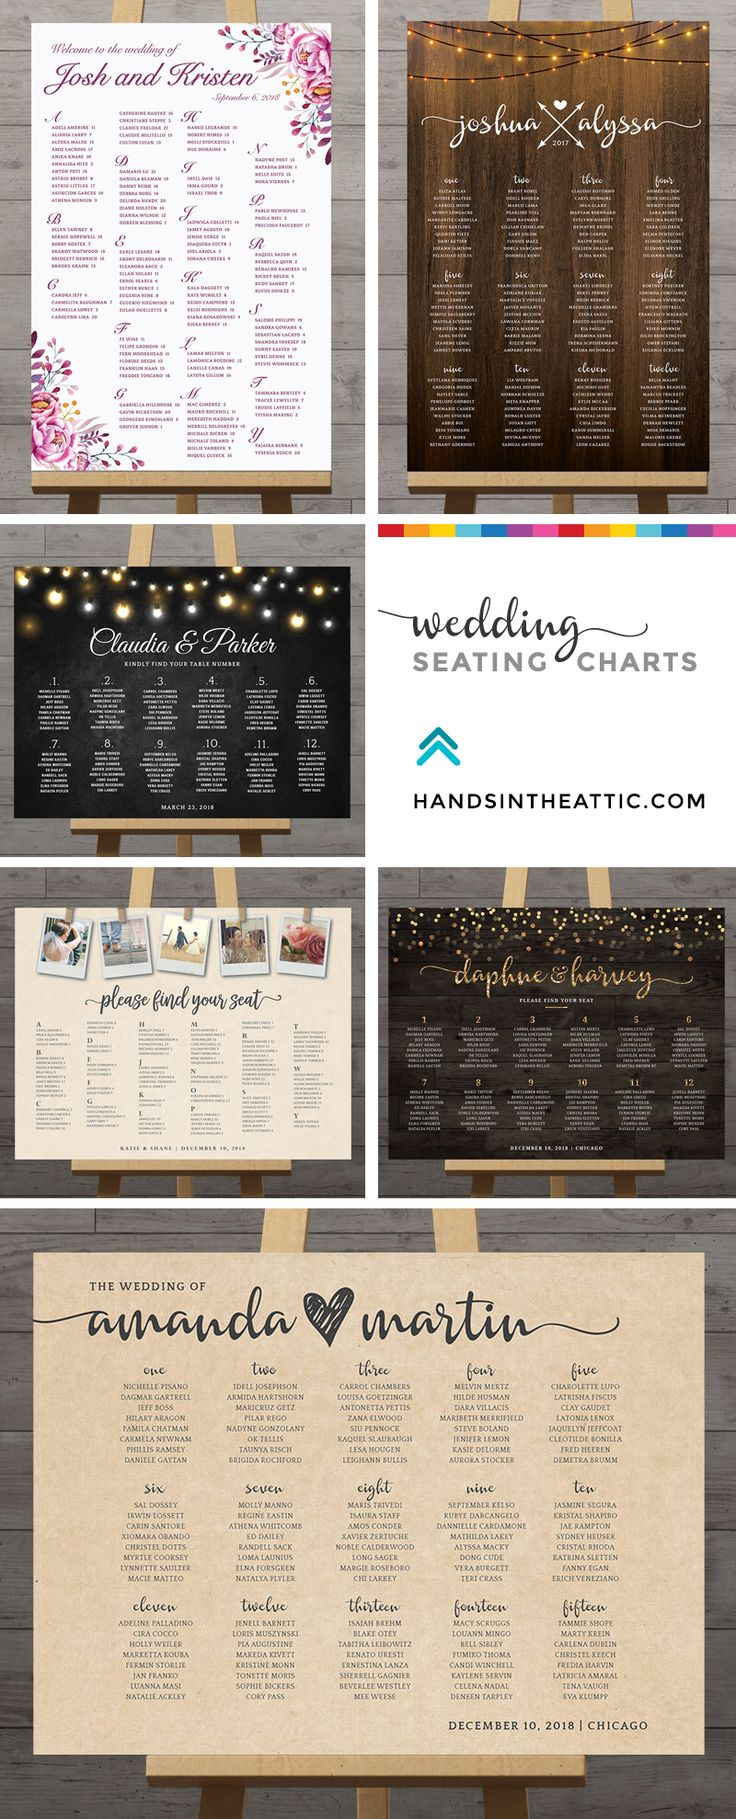 Wedding seating charts ideas ~ Printable stationery | Weddings, Parties & Celebrations